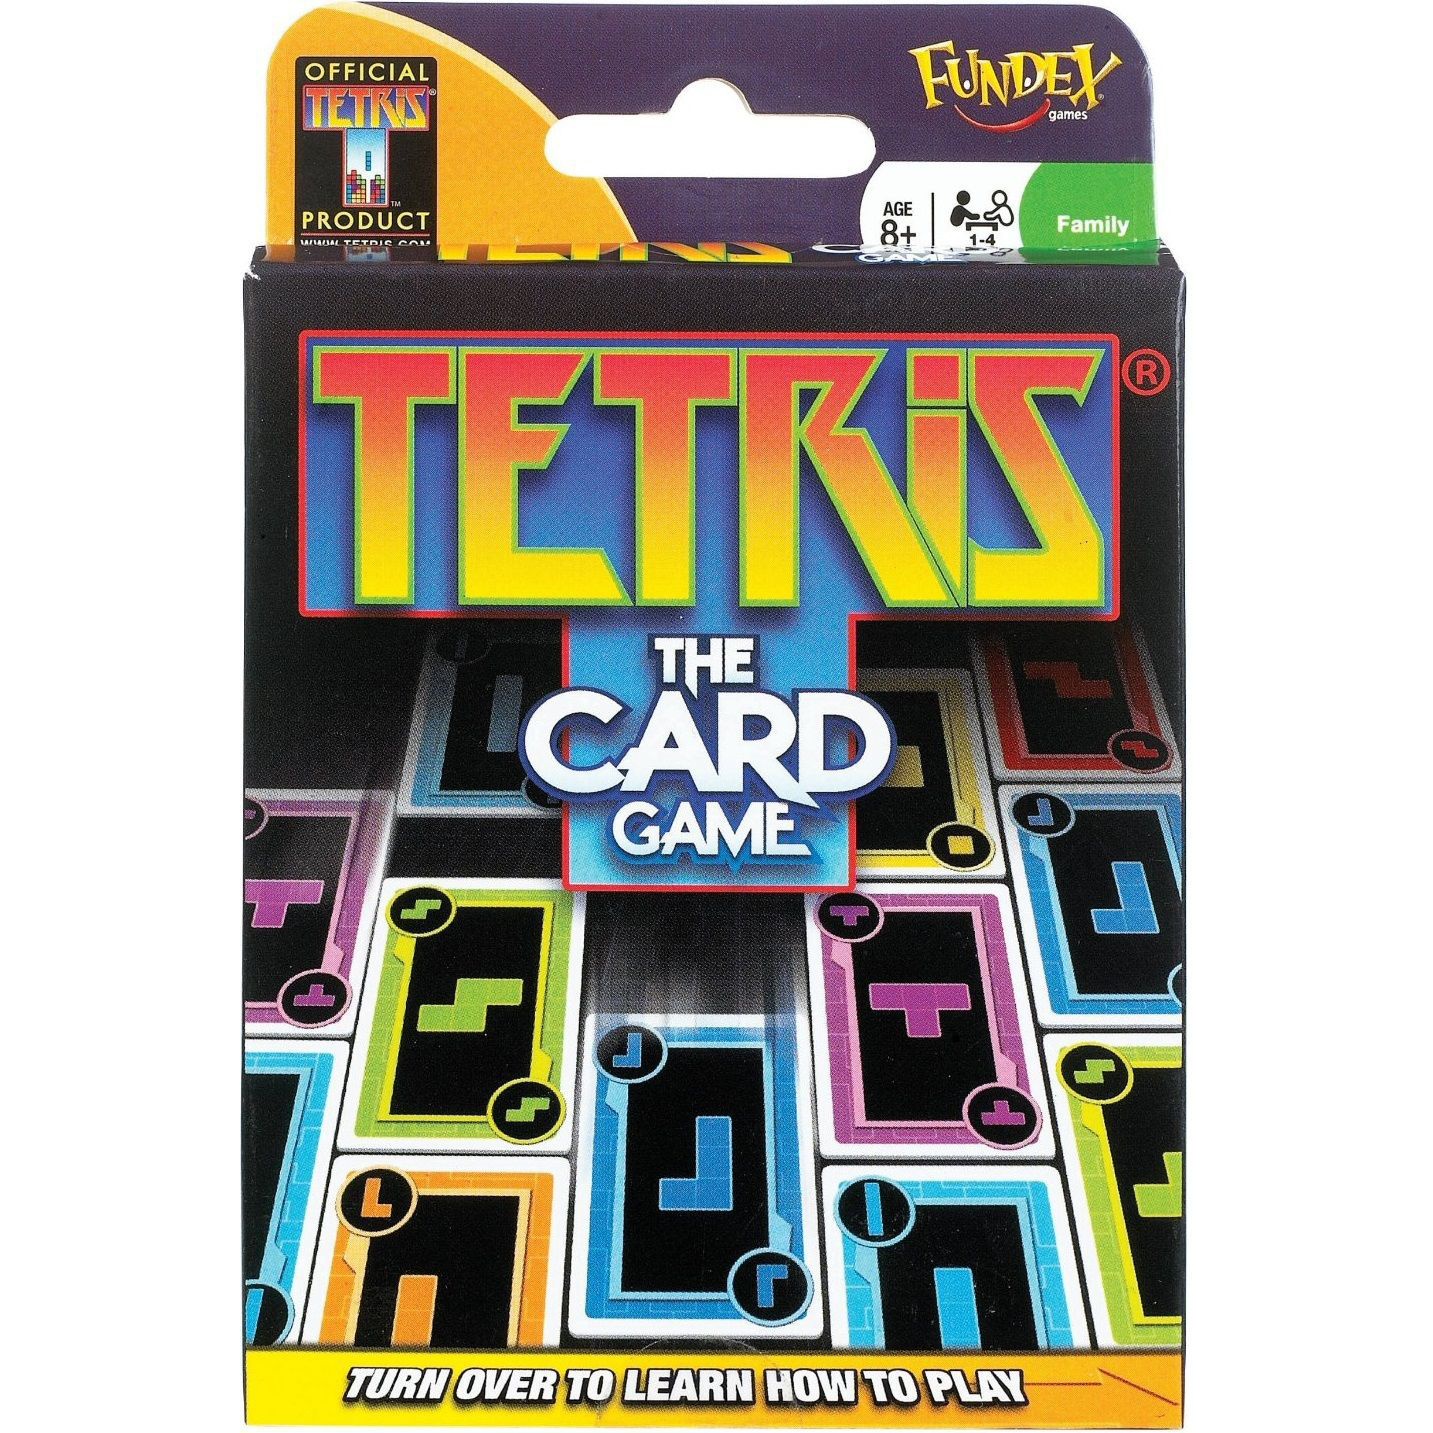 Tetris The Card Game Card Game Fundex Card Games Classic Video Games Online Card Games